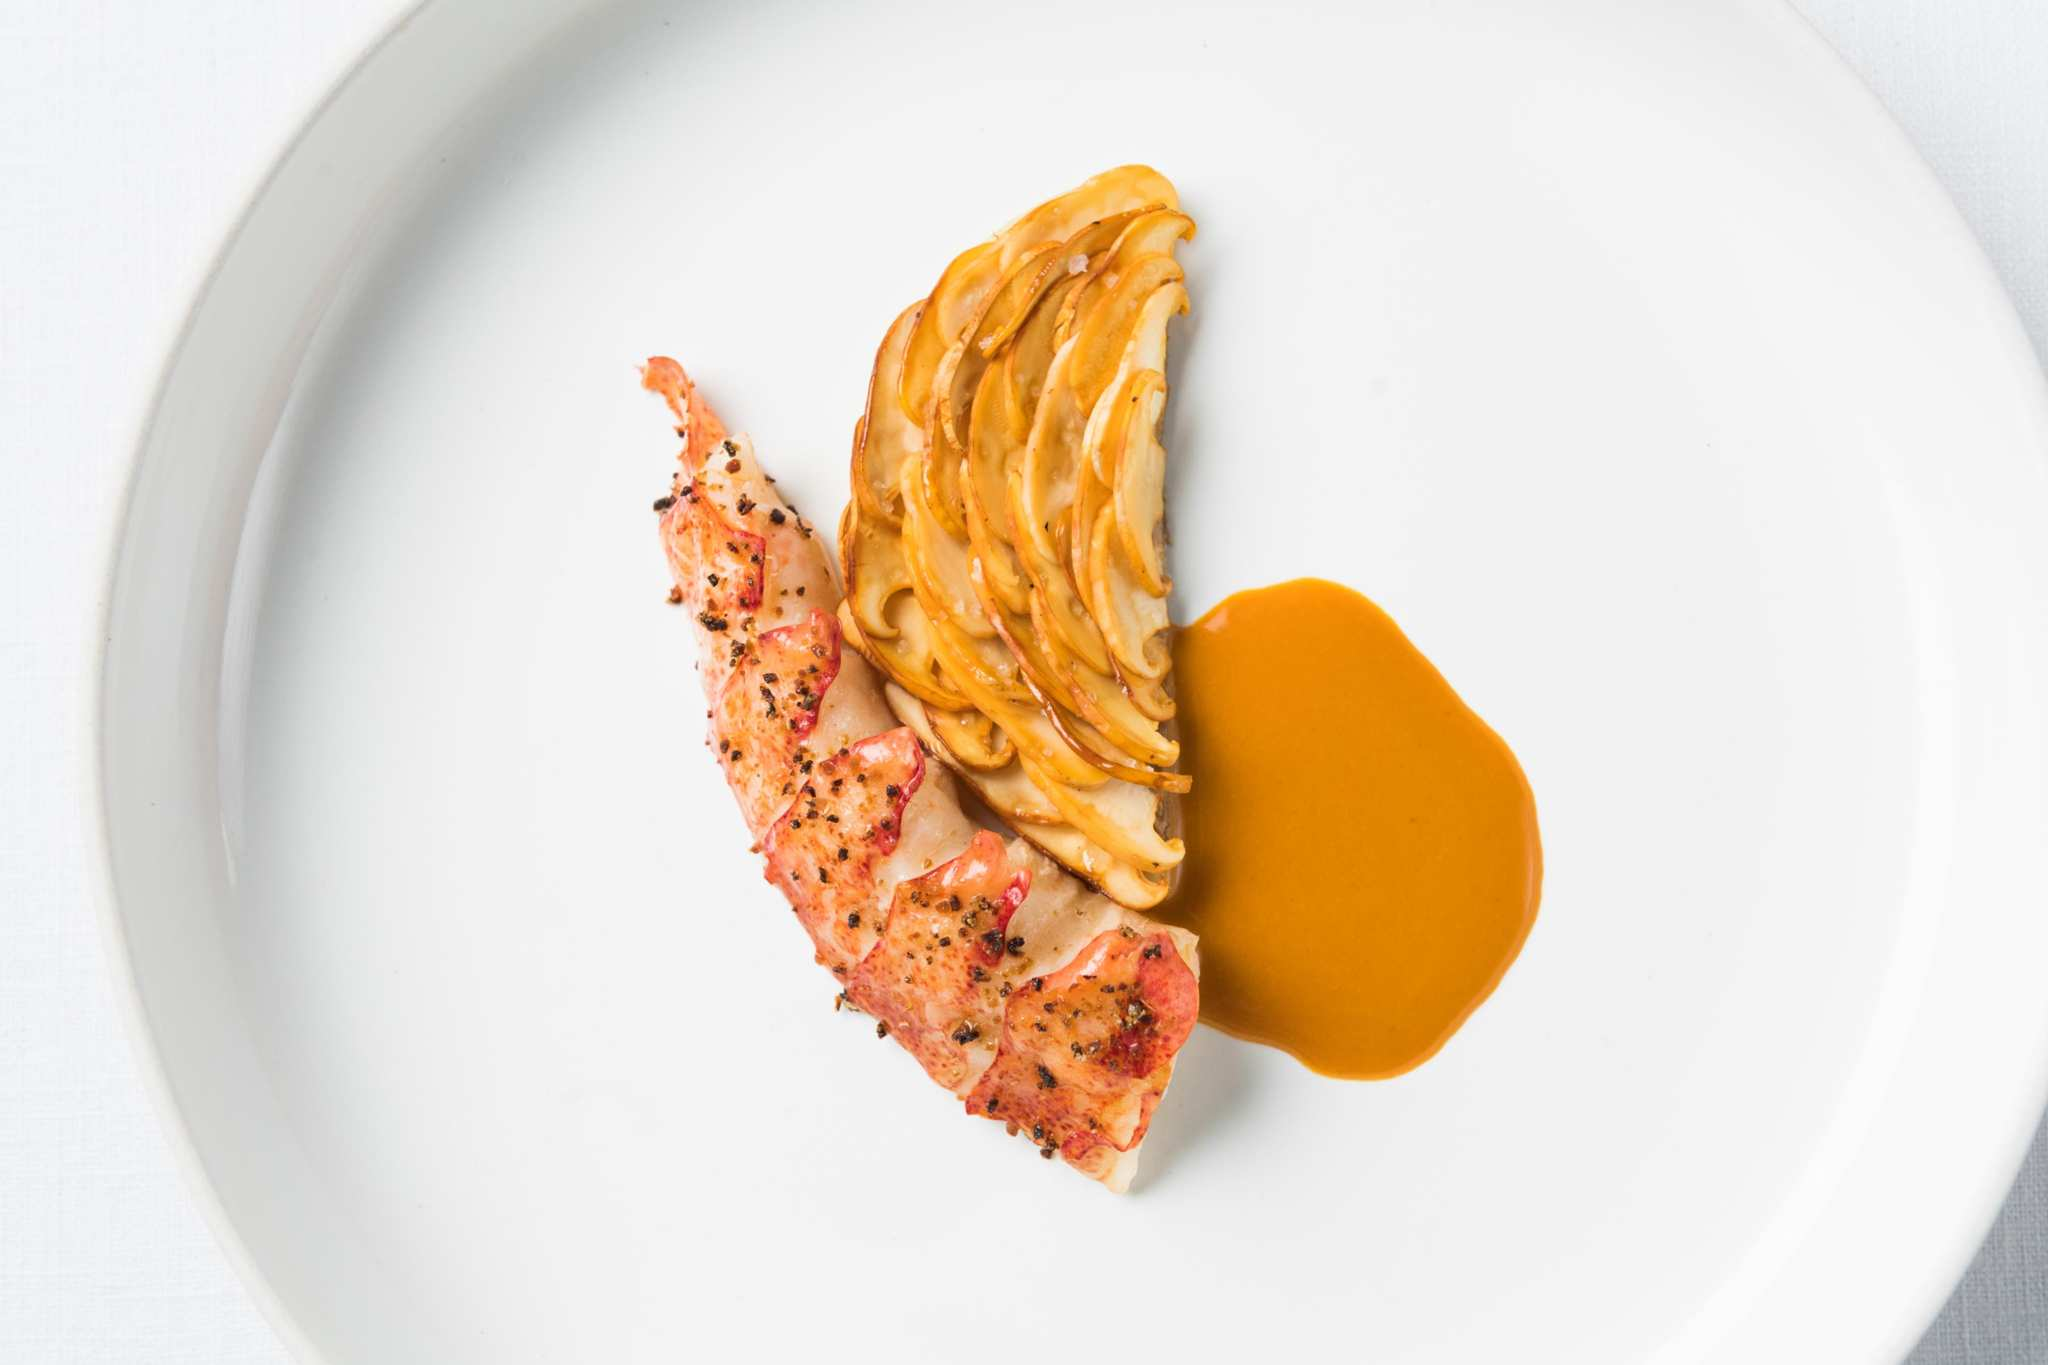 Osteria Francescana, Massimo Bottura, Best Restaurants, The World's 50 Best Restaurants, El Celler de Can Roca, Mauro Colagreco, Côte d'Azur, Mirazur, Eleven Madison Park, Daniel Humm, chef, cuisine, Gaggan Anand, El Bulli, Michelin star, Top restaurants in the world